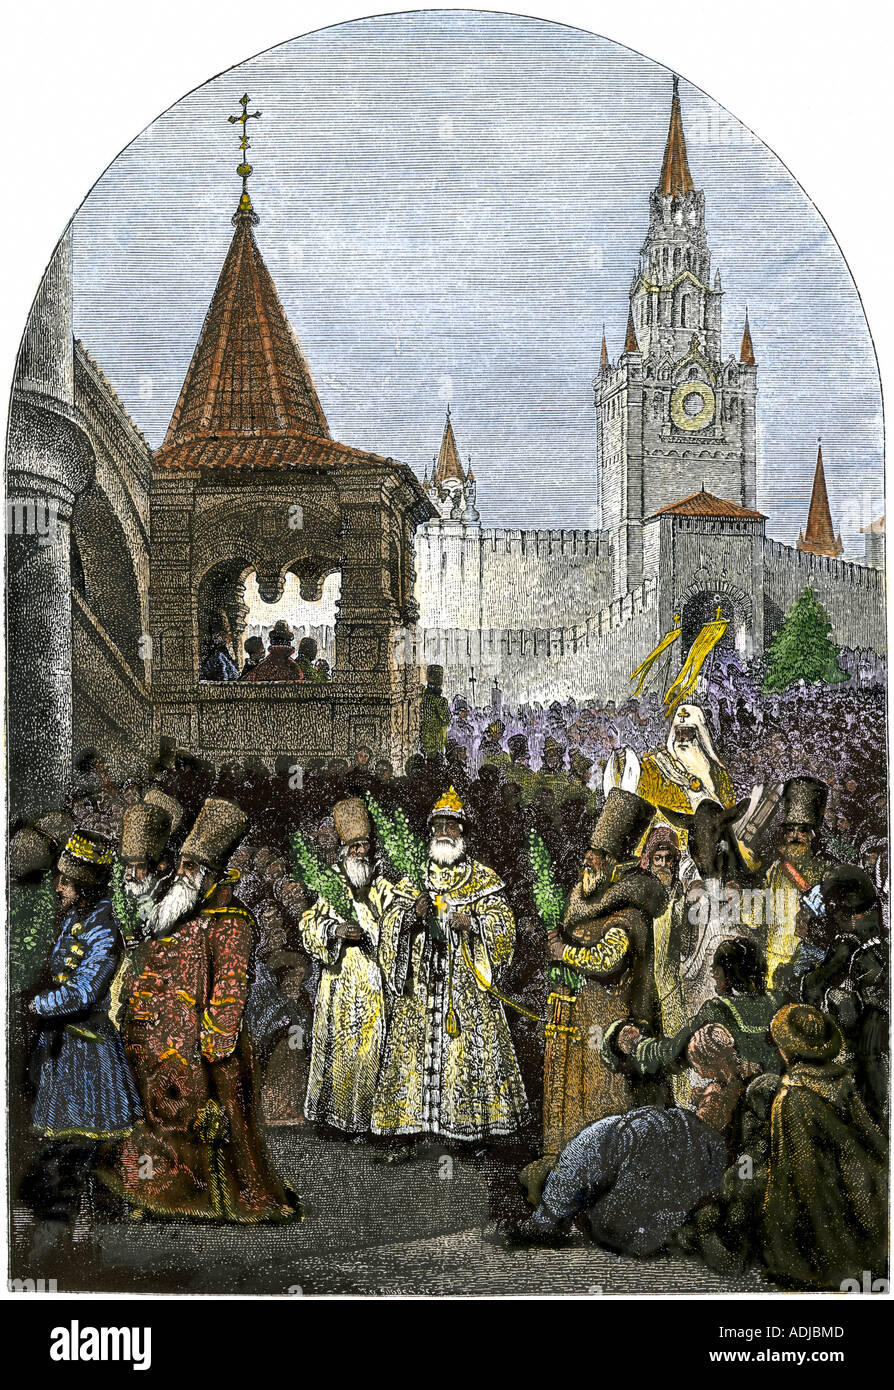 Religious procession in Moscow during the reign of Tsar Ivan IV the Terrible 1500s. Hand-colored woodcut - Stock Image